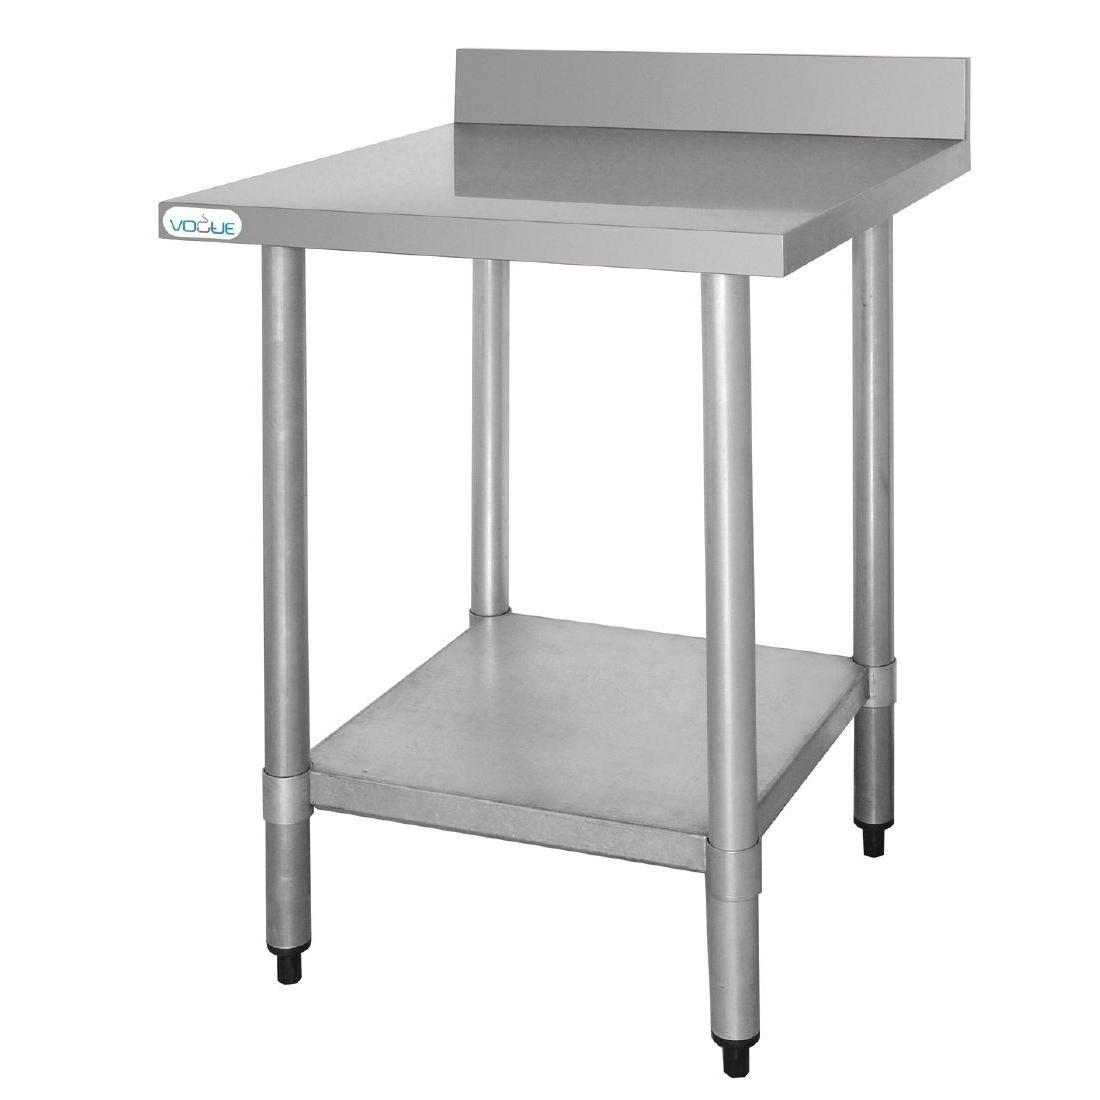 Vogue Stainless Steel Prep Table with Upstand 600mm - T379